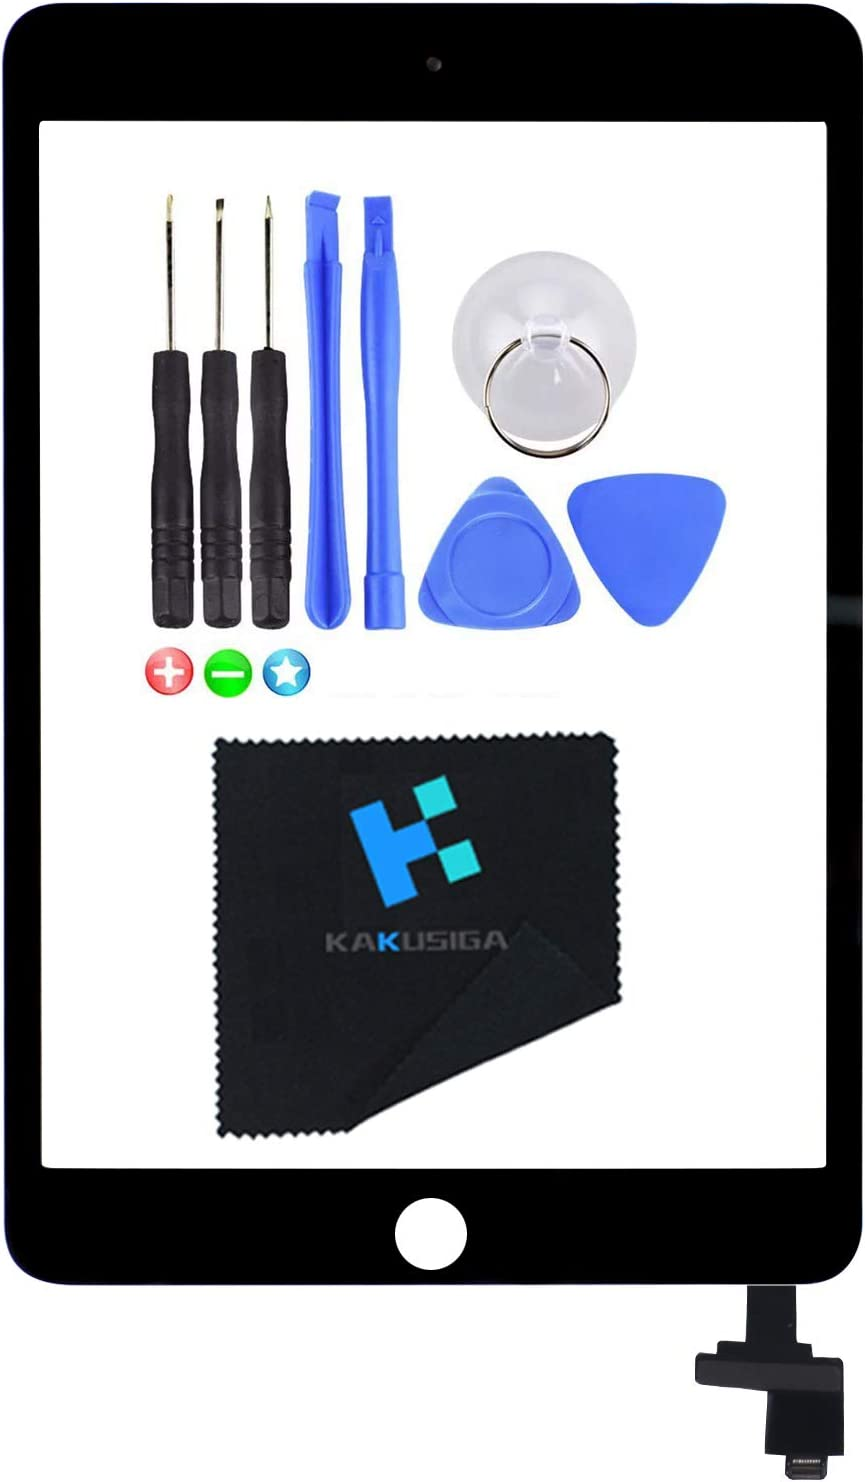 KAKUSIGA Compatible with iPad Mini 3 (3rd Generation) Display Touch Screen Digitizer Glass OEM Assembly, IC Chip, Adhesive Tape, and Repair Toolkit Without Home Button,not an LCD(Black)